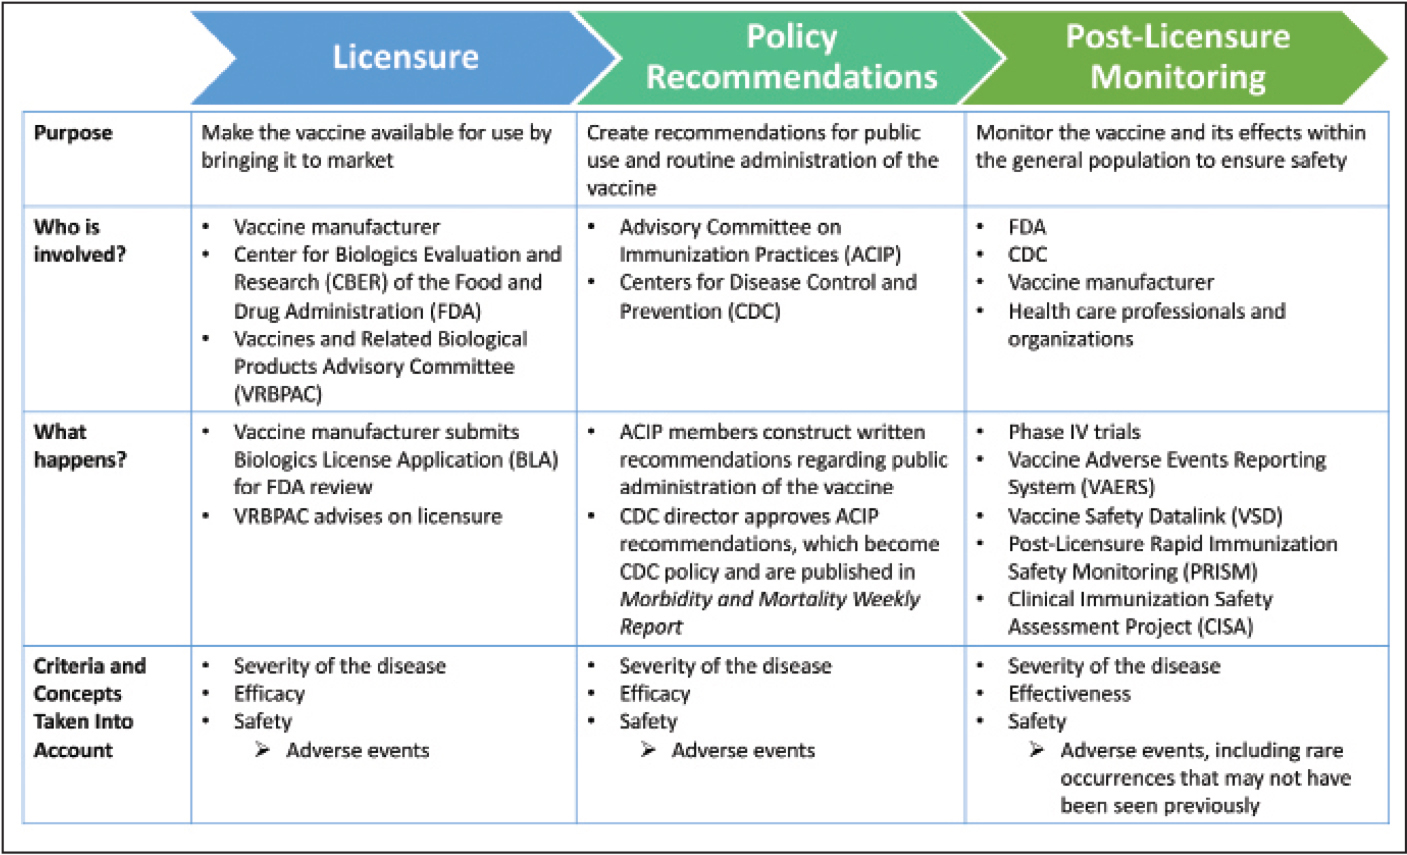 Overview of vaccine development after clinical evaluation: licensure, policy recommendations, and post-licensure monitoring. Adapted from Bloom et al.,8 Smith et al.,20 Centers for Disease Control and Prevention,24,26,27 and Shimabukuro et al.25